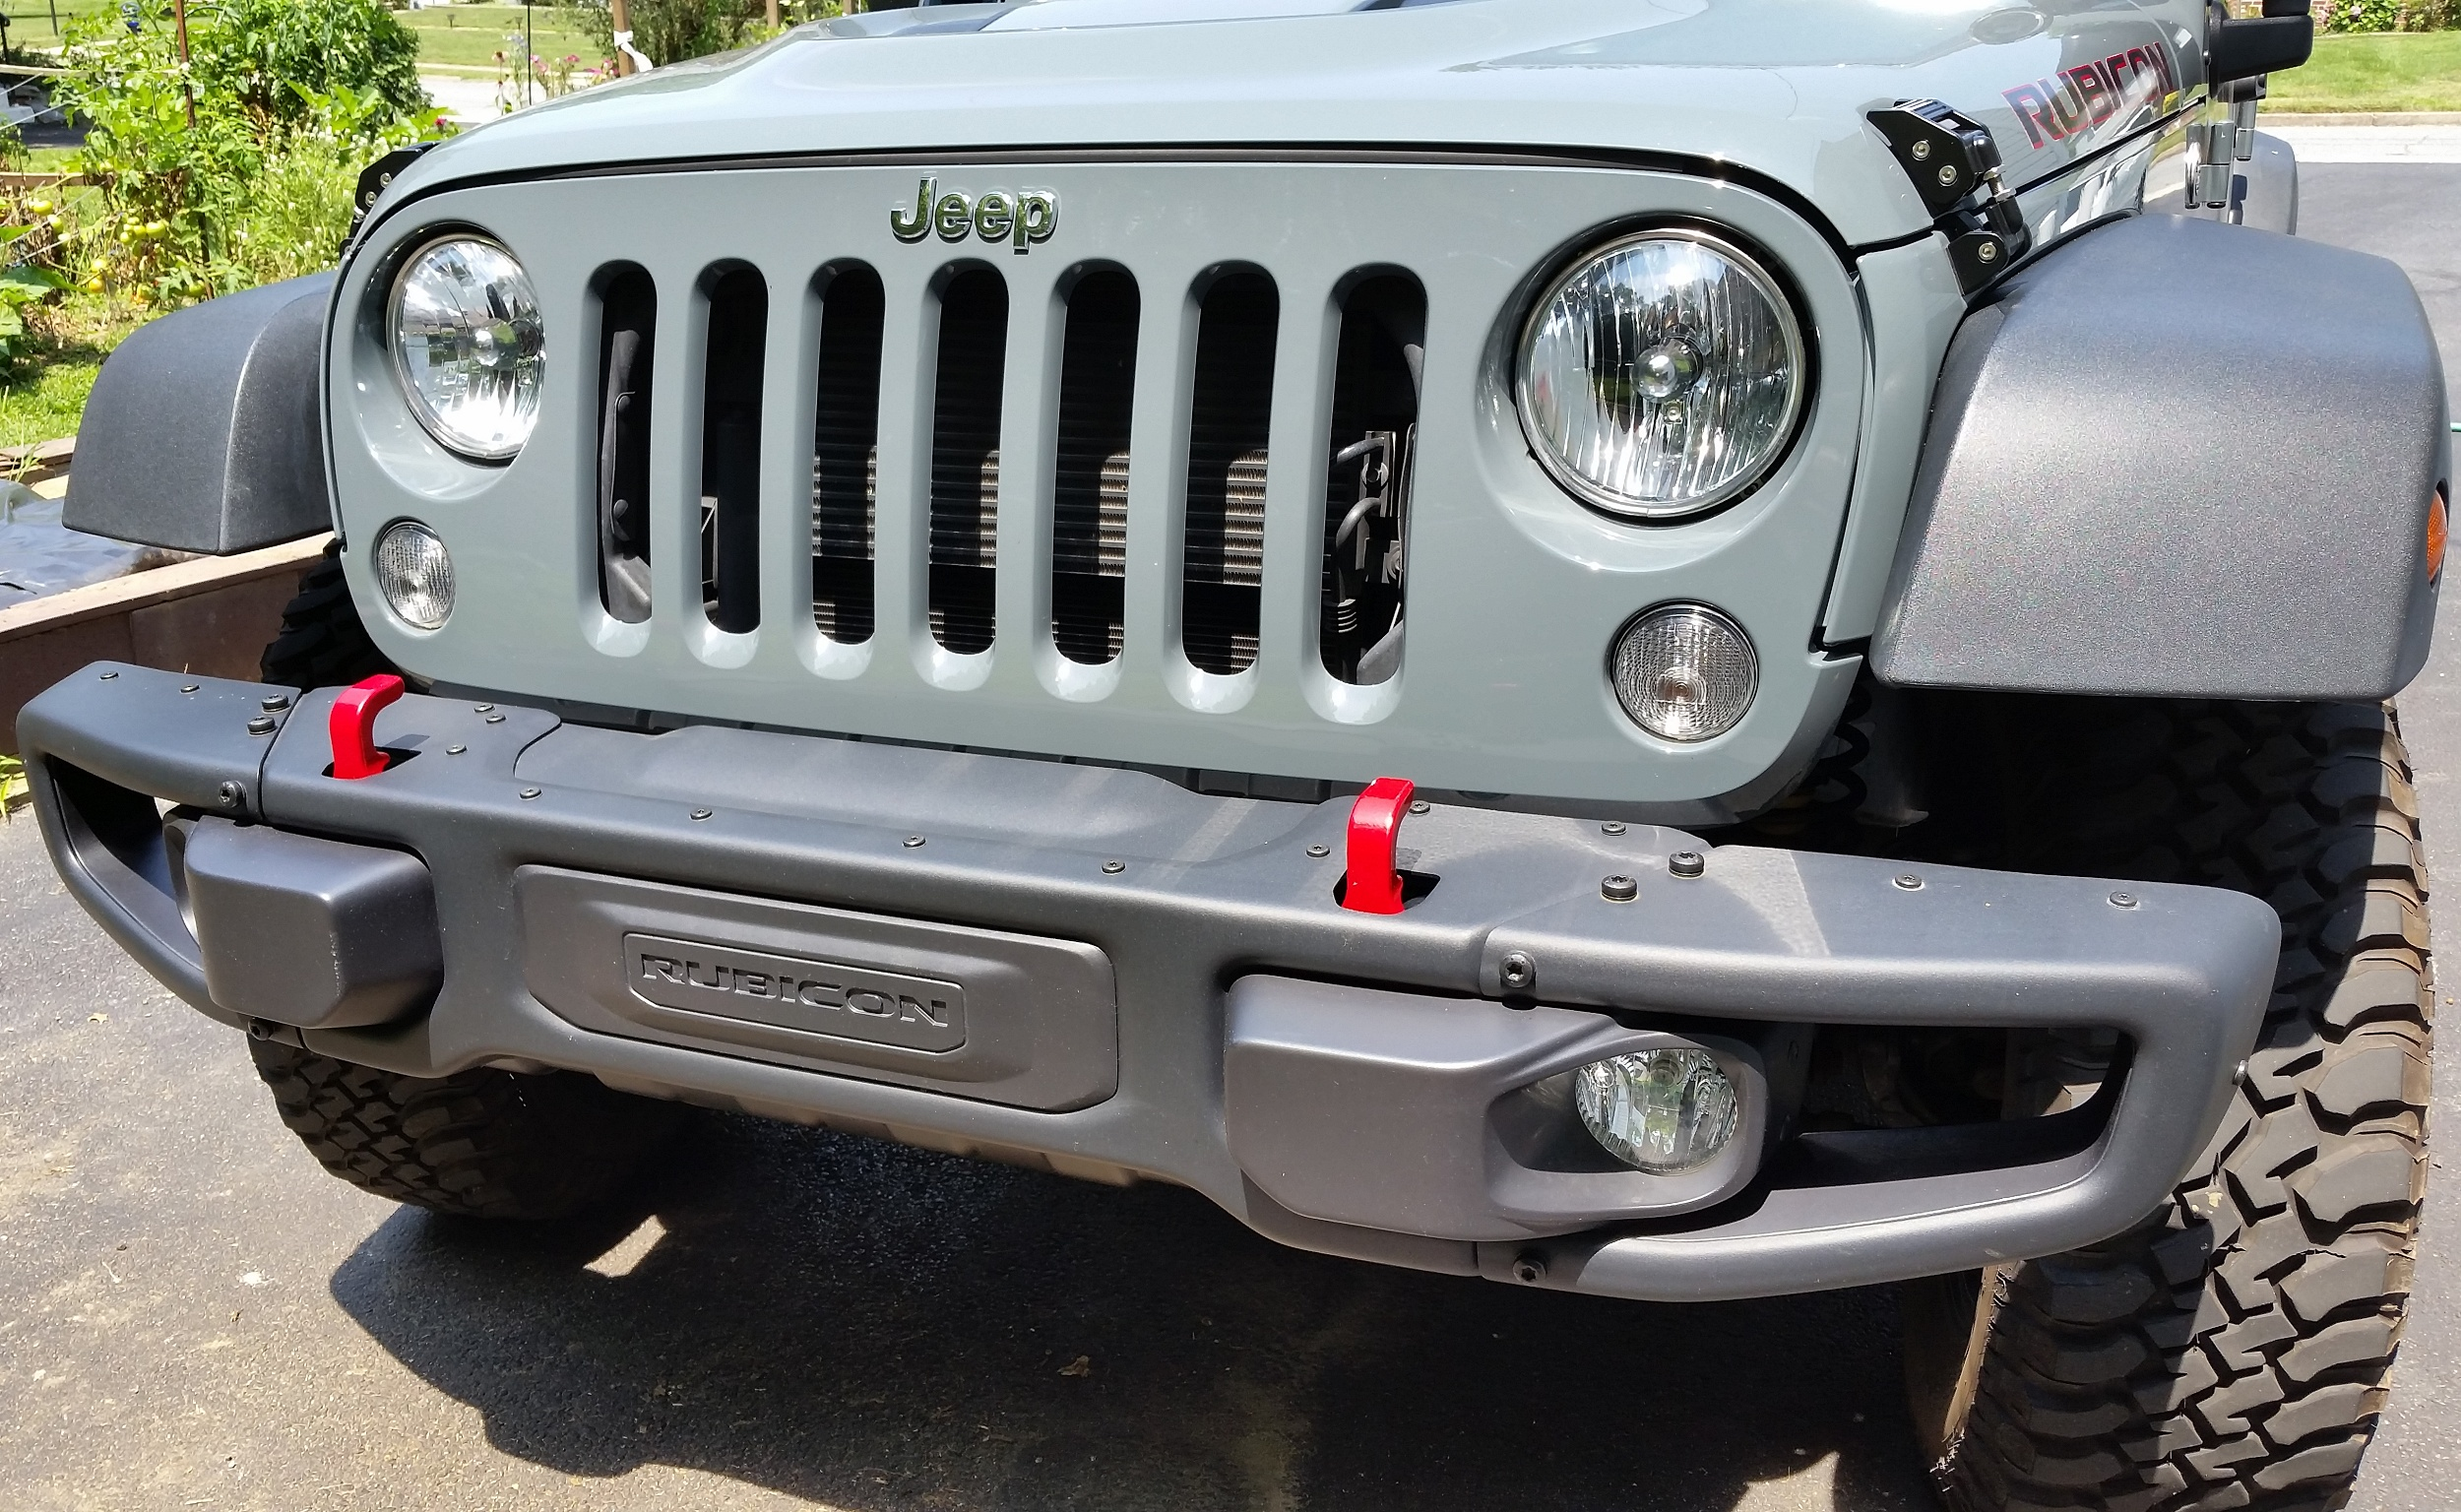 Maximus 3 Winch Mount Installation Bumper Removal Wiring Schamitic Jeep Wrangler Rubicon X Intro Enhancements